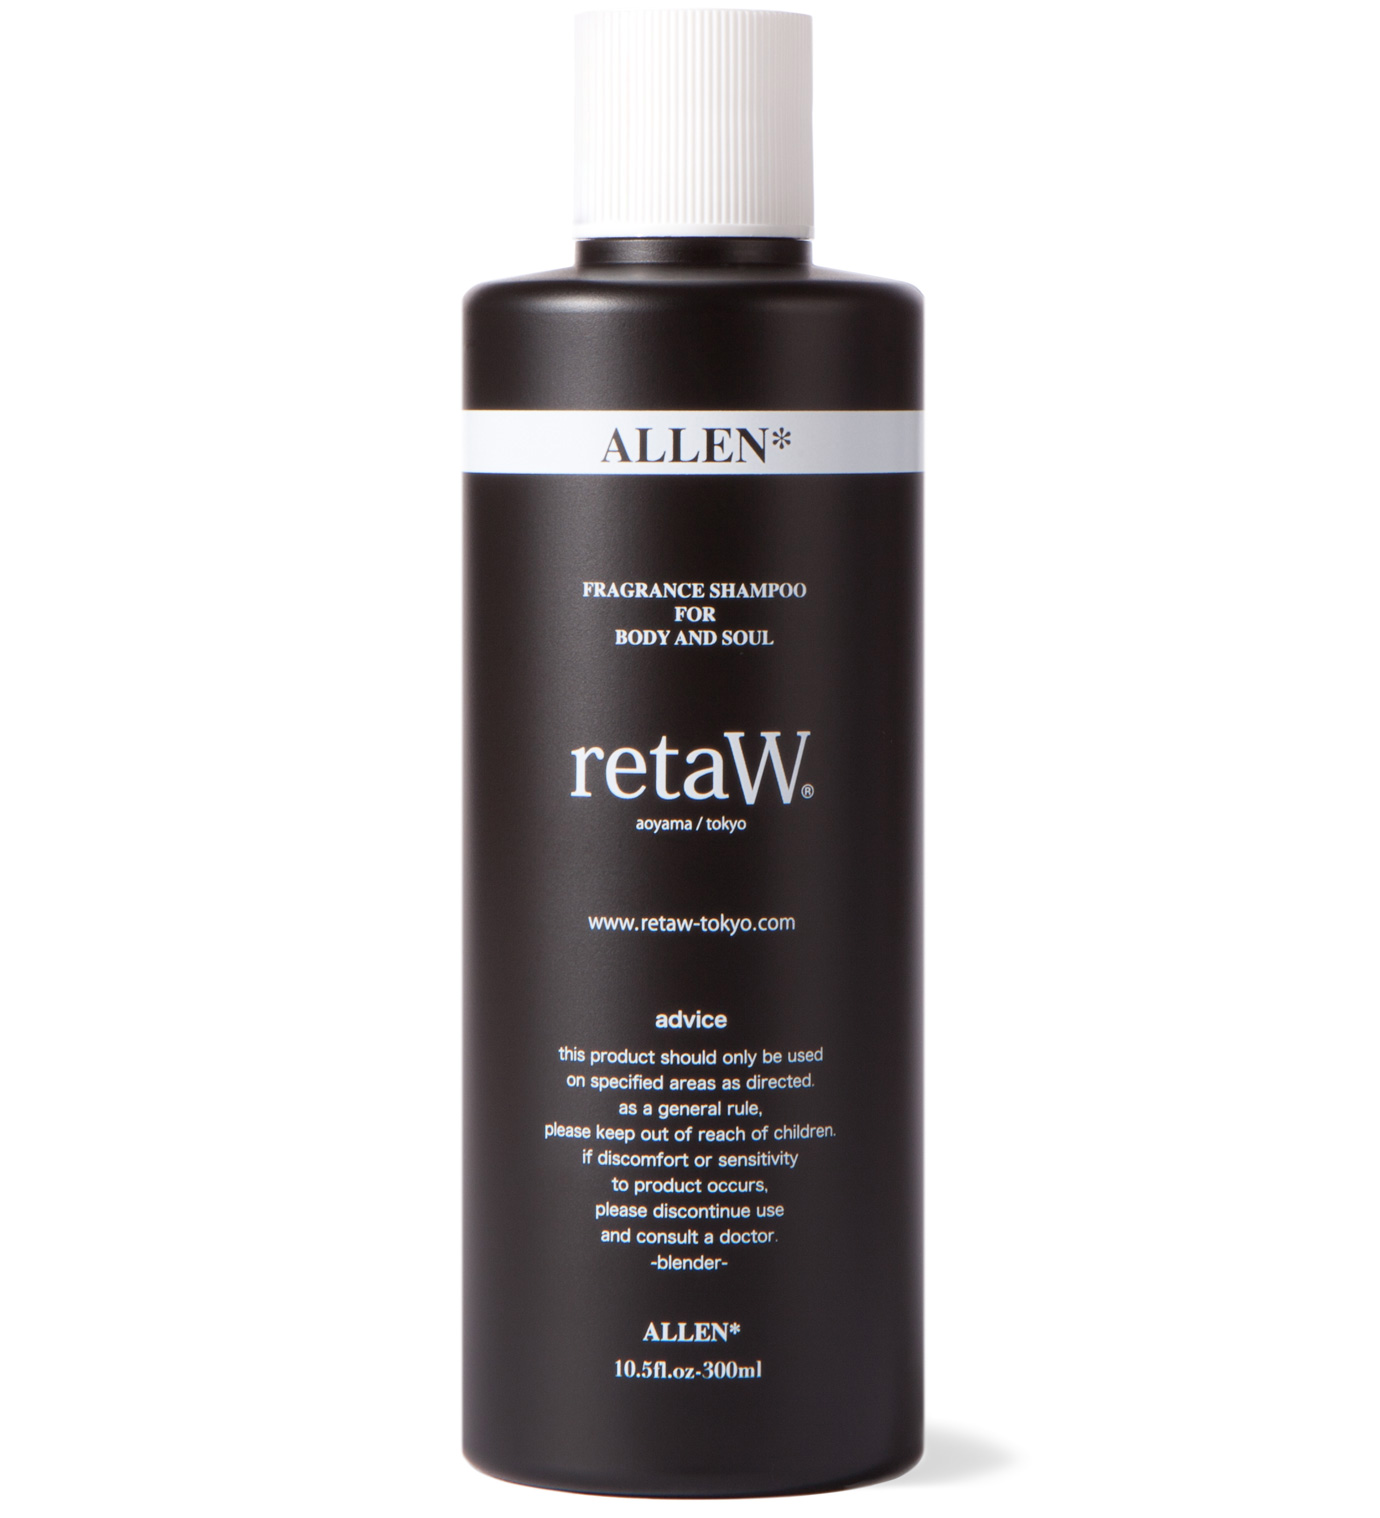 retaW Allen Fragrance Body Shampoo